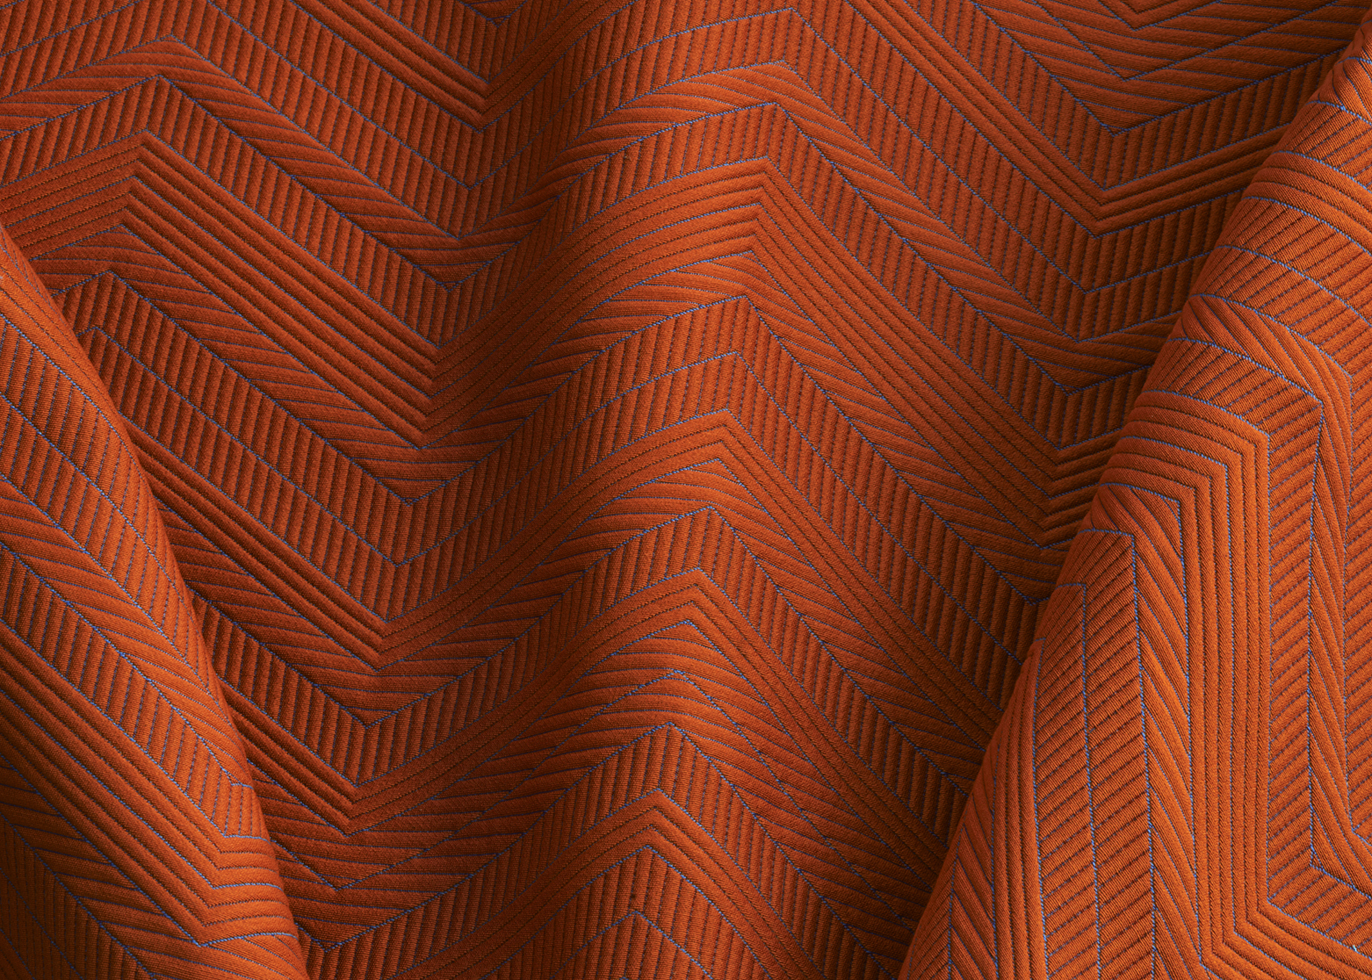 Moving Blanket  - is inspired by the simplicity of its name – a moving blanket. Designed with a chevron pattern using a matelassé structure to enhance its padded construction, this elegant reinterpretation of a classic material features both large- and thin-stitched lines inspired by artist Sol Lewitt's drawings and focuses on contrast. Available in 9 colors.